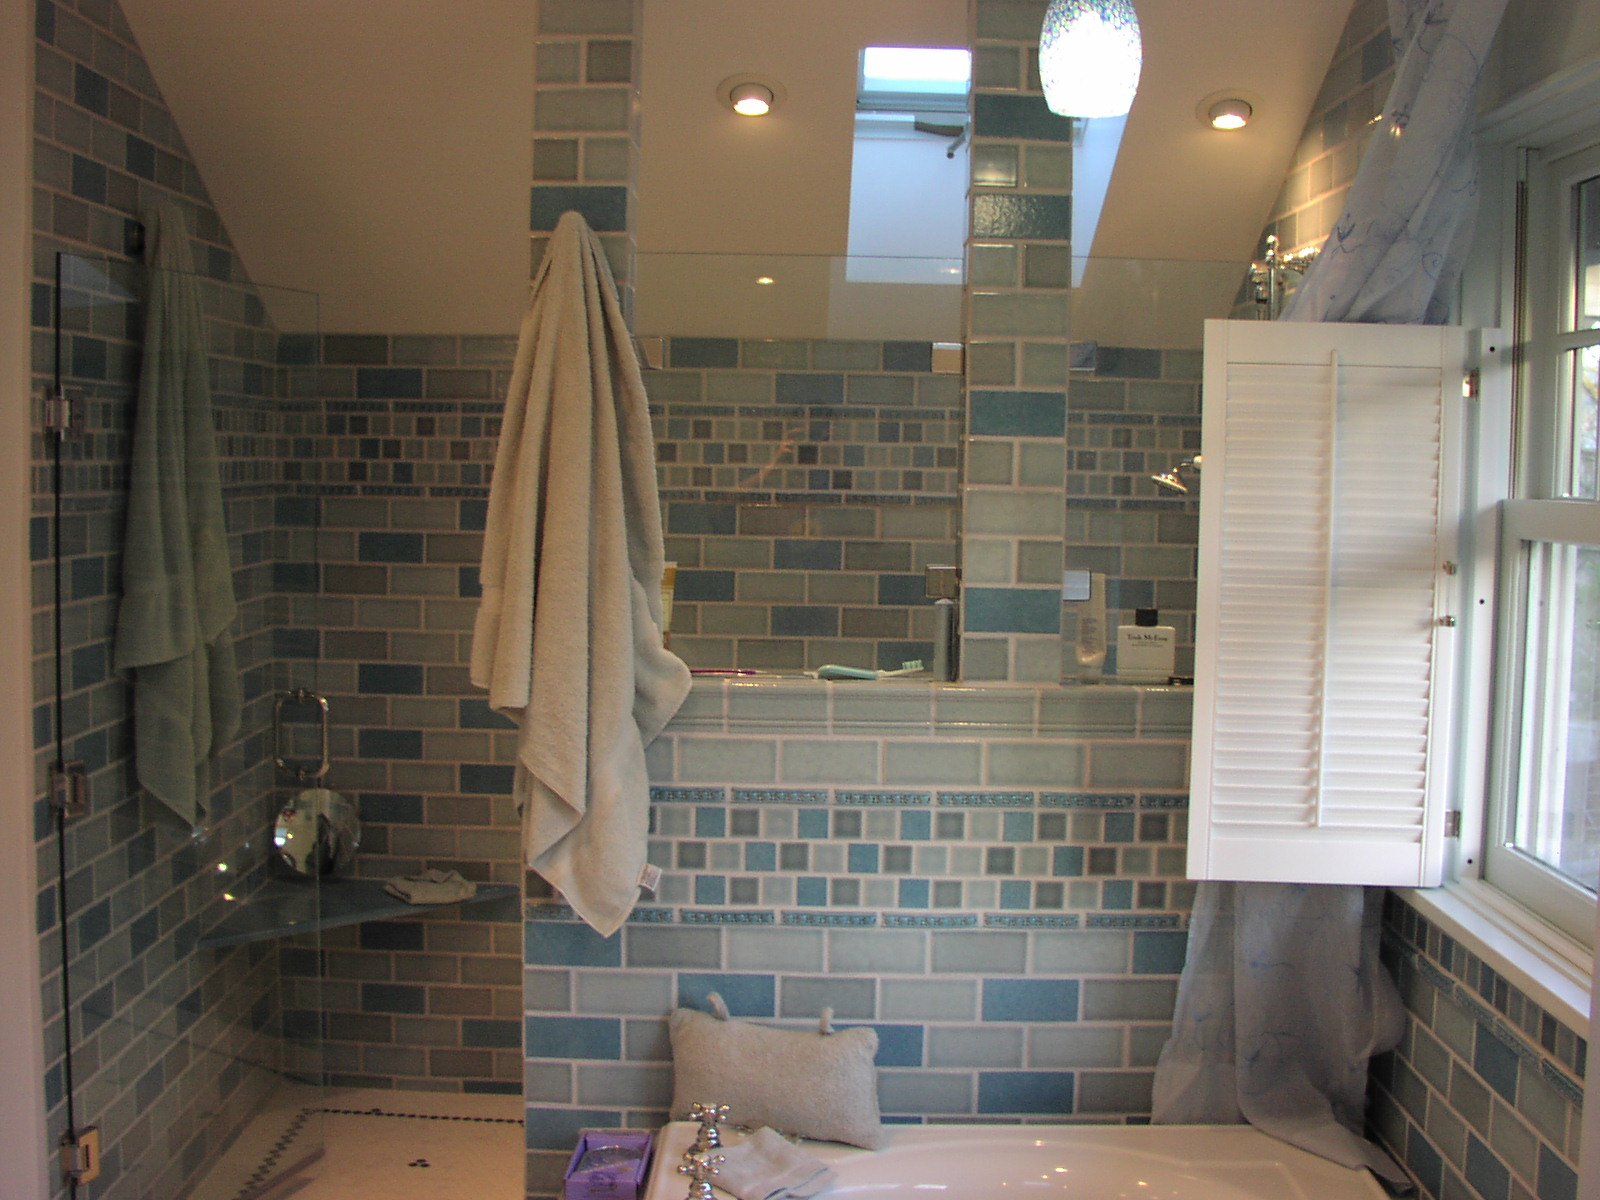 bathroom after remodel   Tiles from San Jose Tile Co. The ...